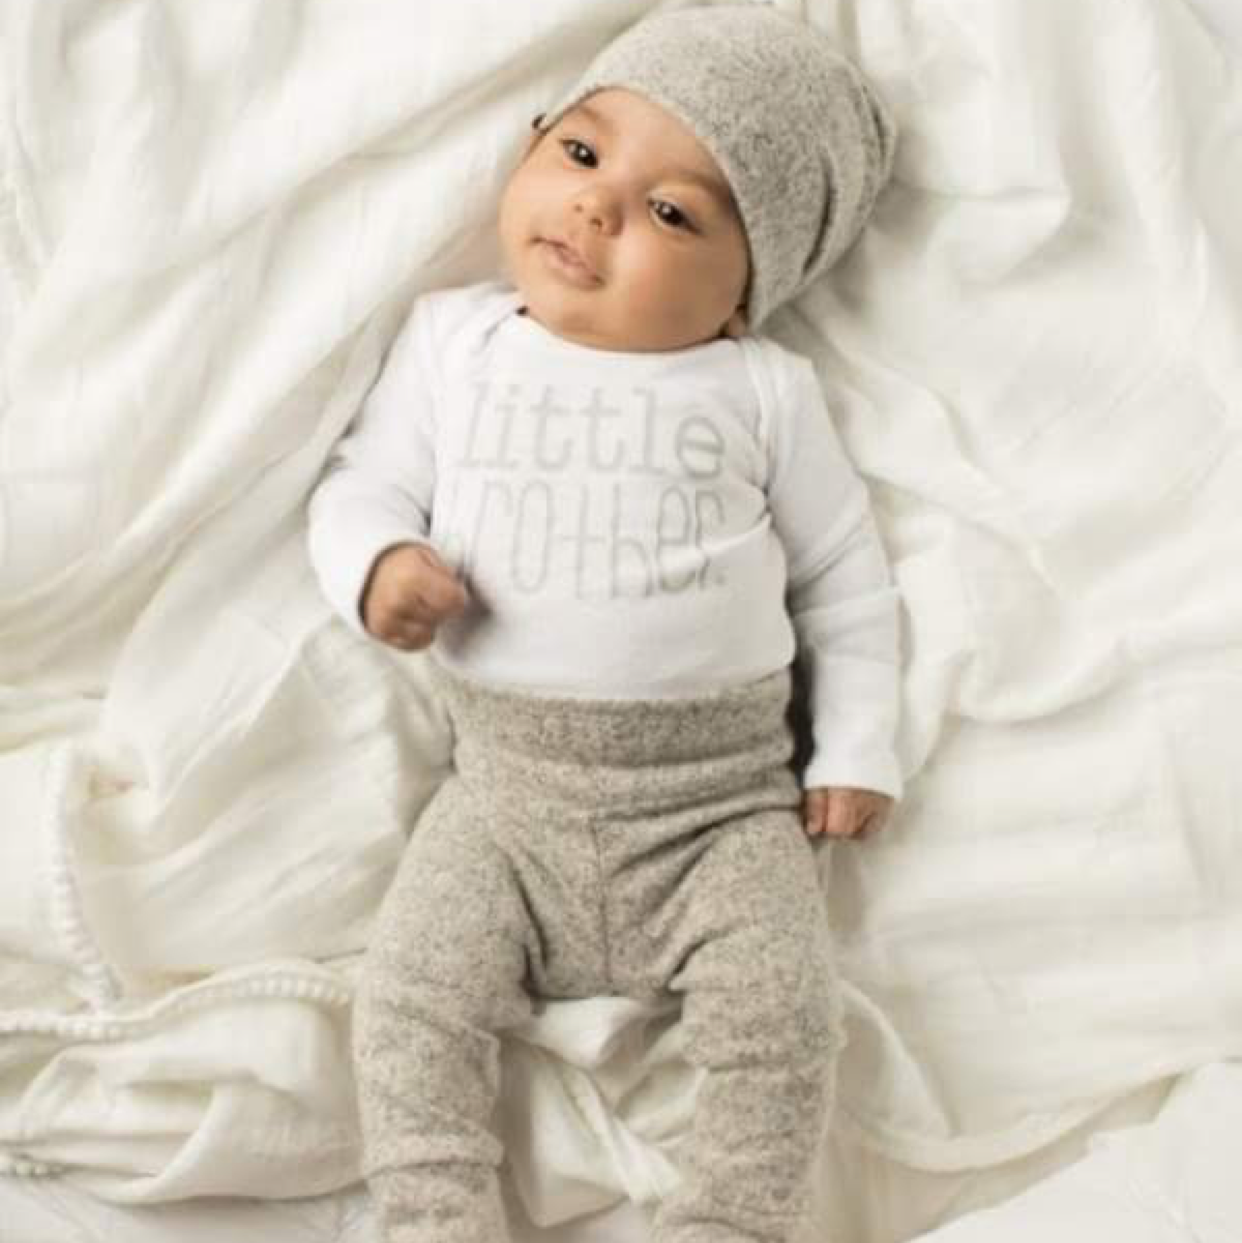 pima cotton Little brother outfit gown coming home outfit little brother gift sibling set